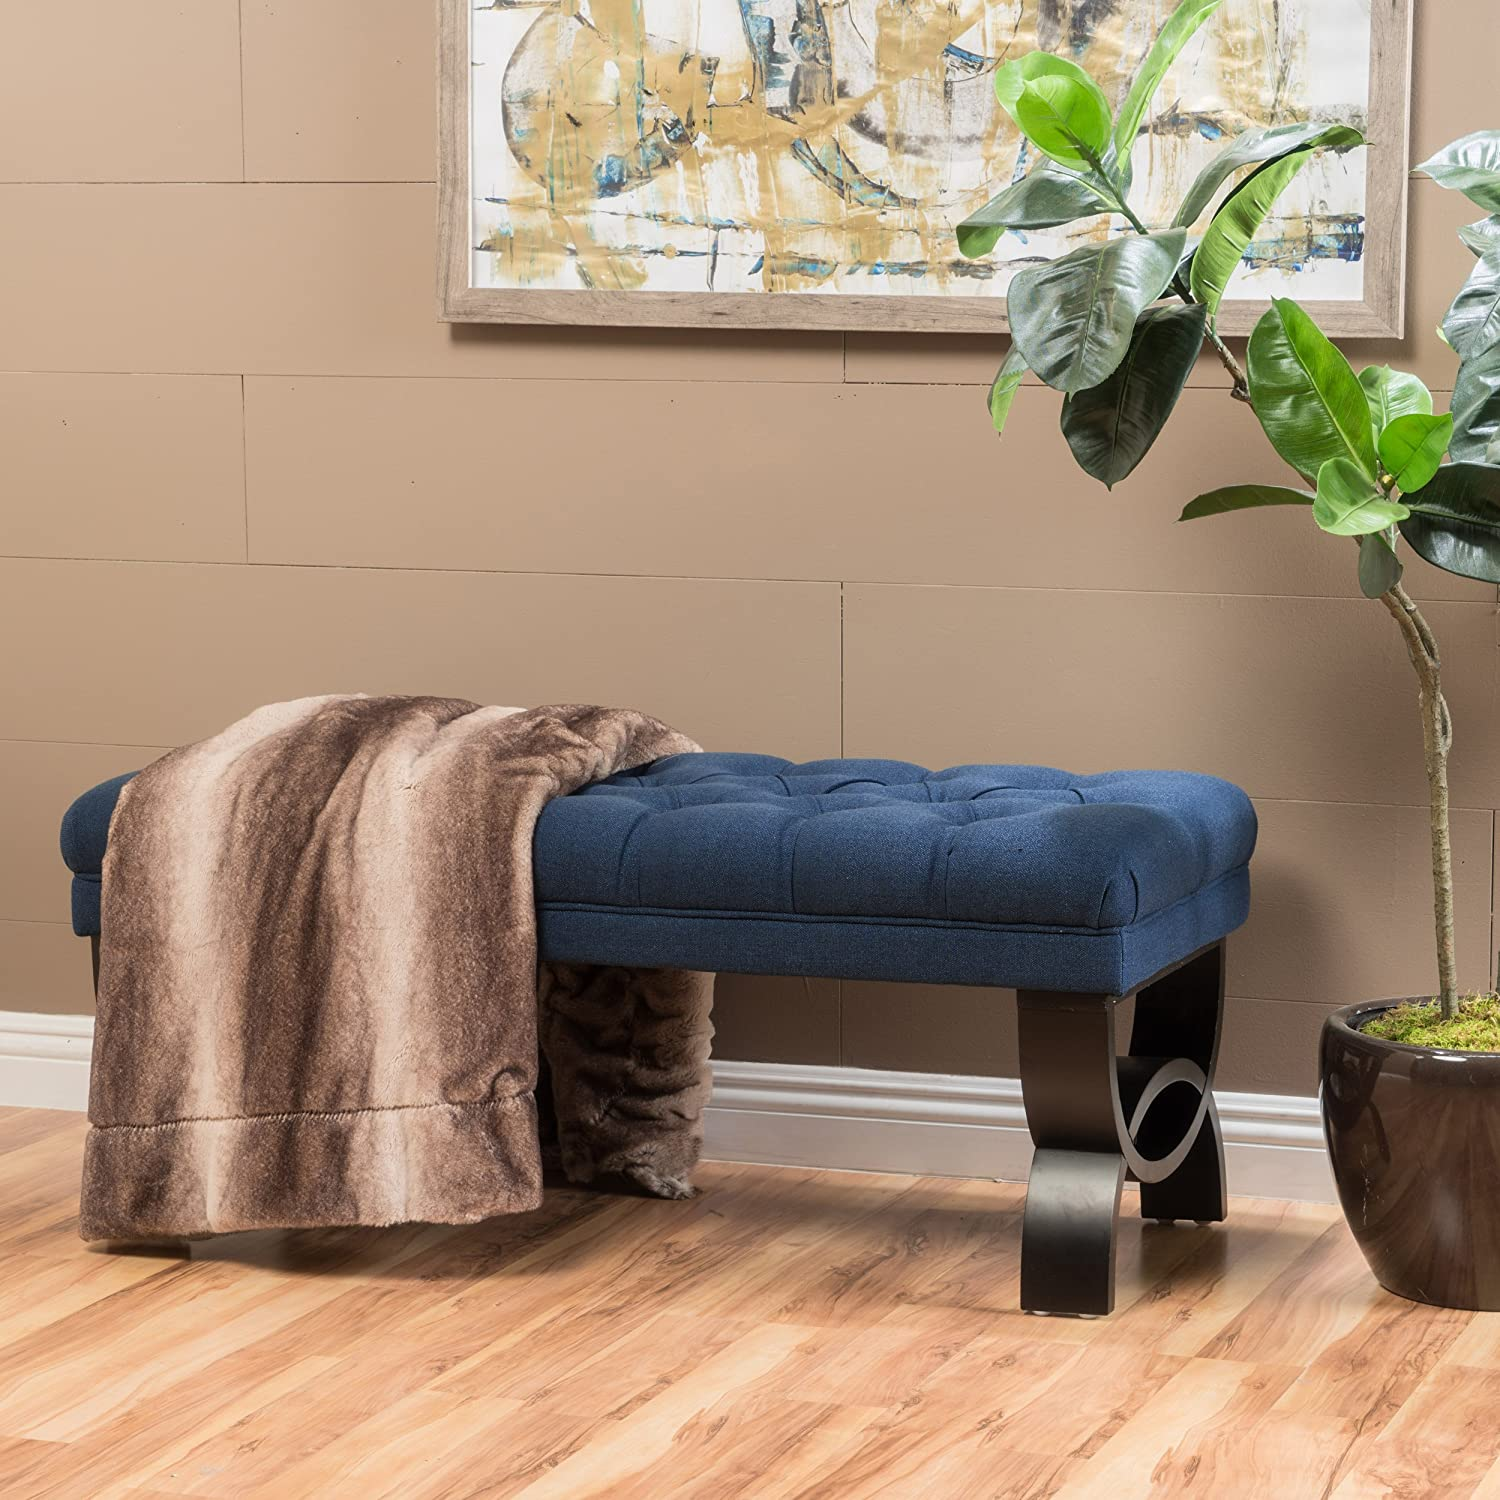 "Christopher Knight Home 299600 Living Reddington Dark Blue Tufted Fabric Ottoman Bench, 17.25""D x 41.00""W x 16.75""H"